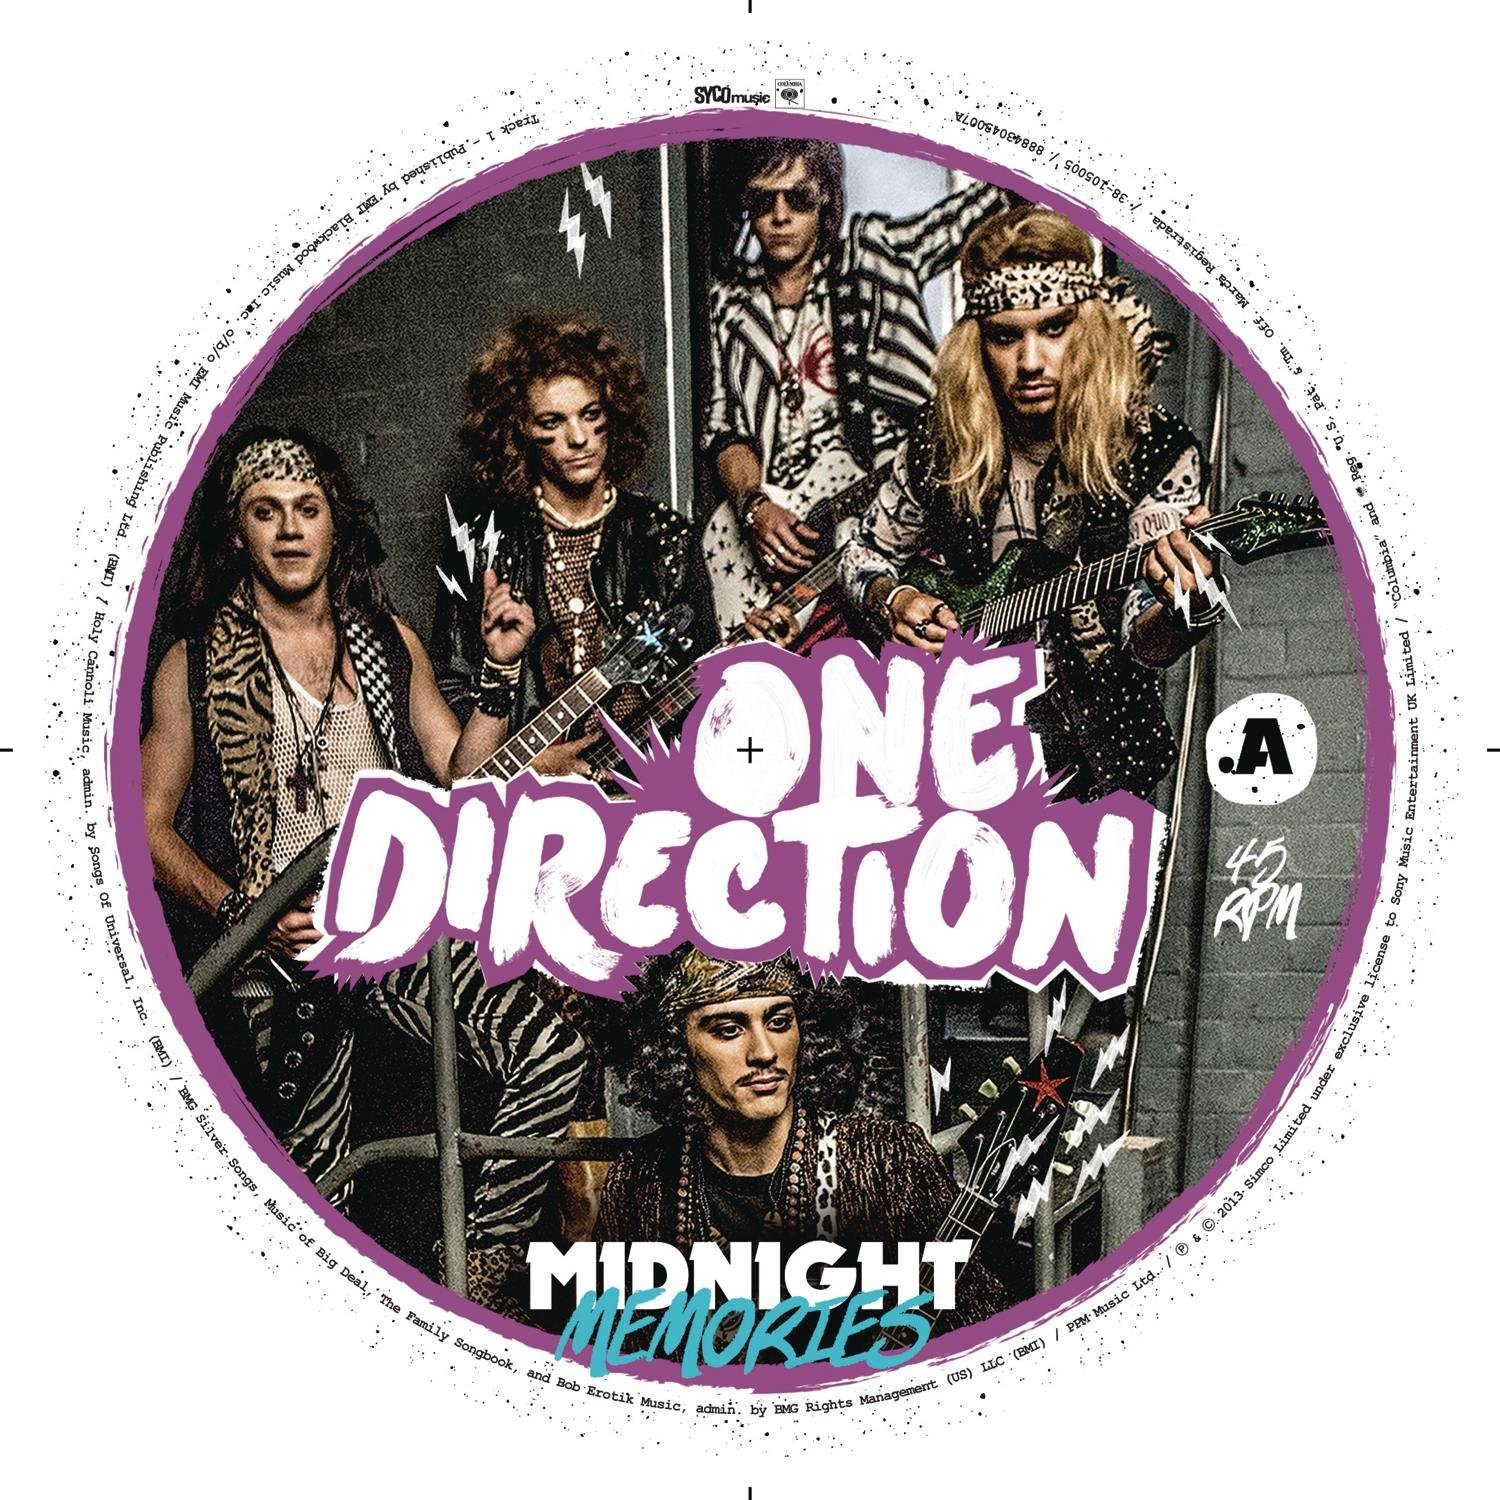 CD : One Direction - One Direction : Midnight Memories (Picture Disc Vinyl LP)